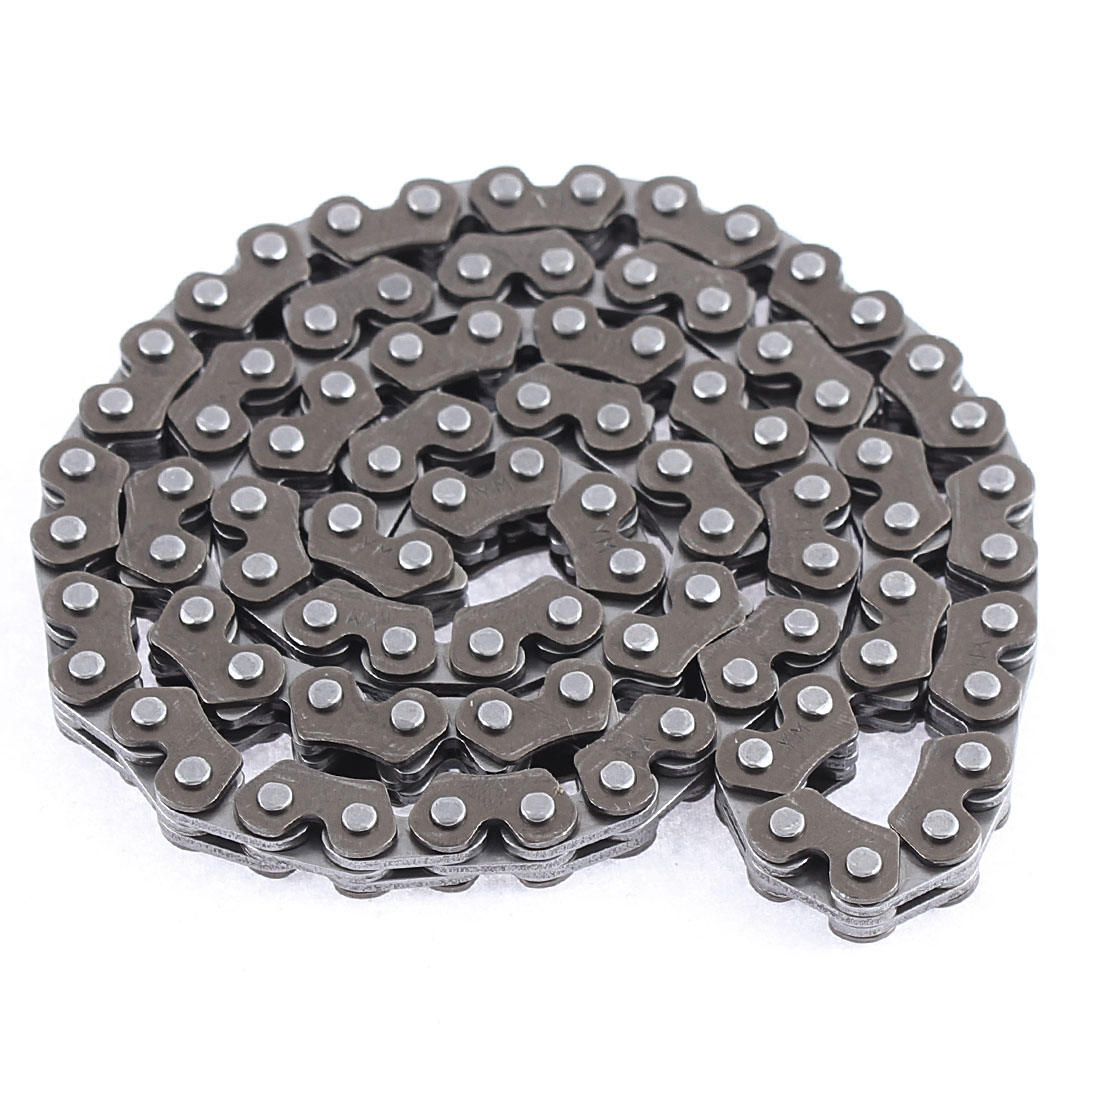 Motorcycle Engine 59cm Girth 90 Link M Style Camshaft Timing Chain Dark Gray